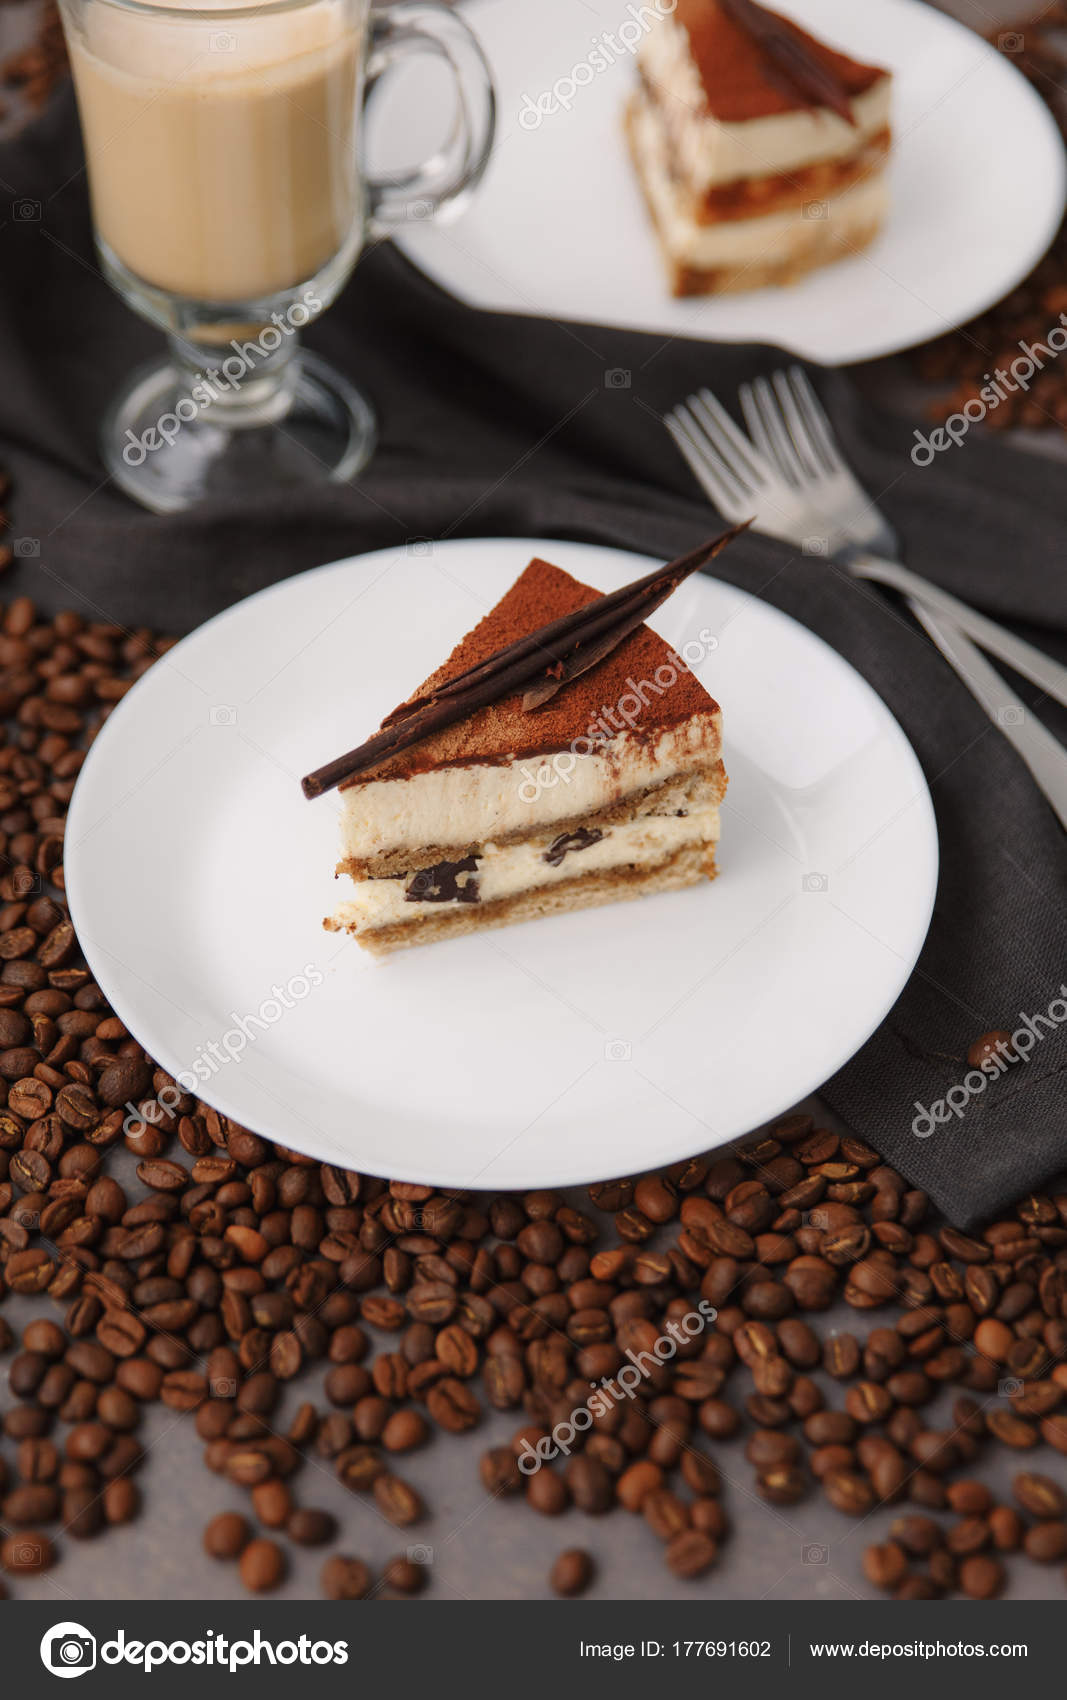 Composition Birthday Cake White Plate Coffee Beans Forks Napkin